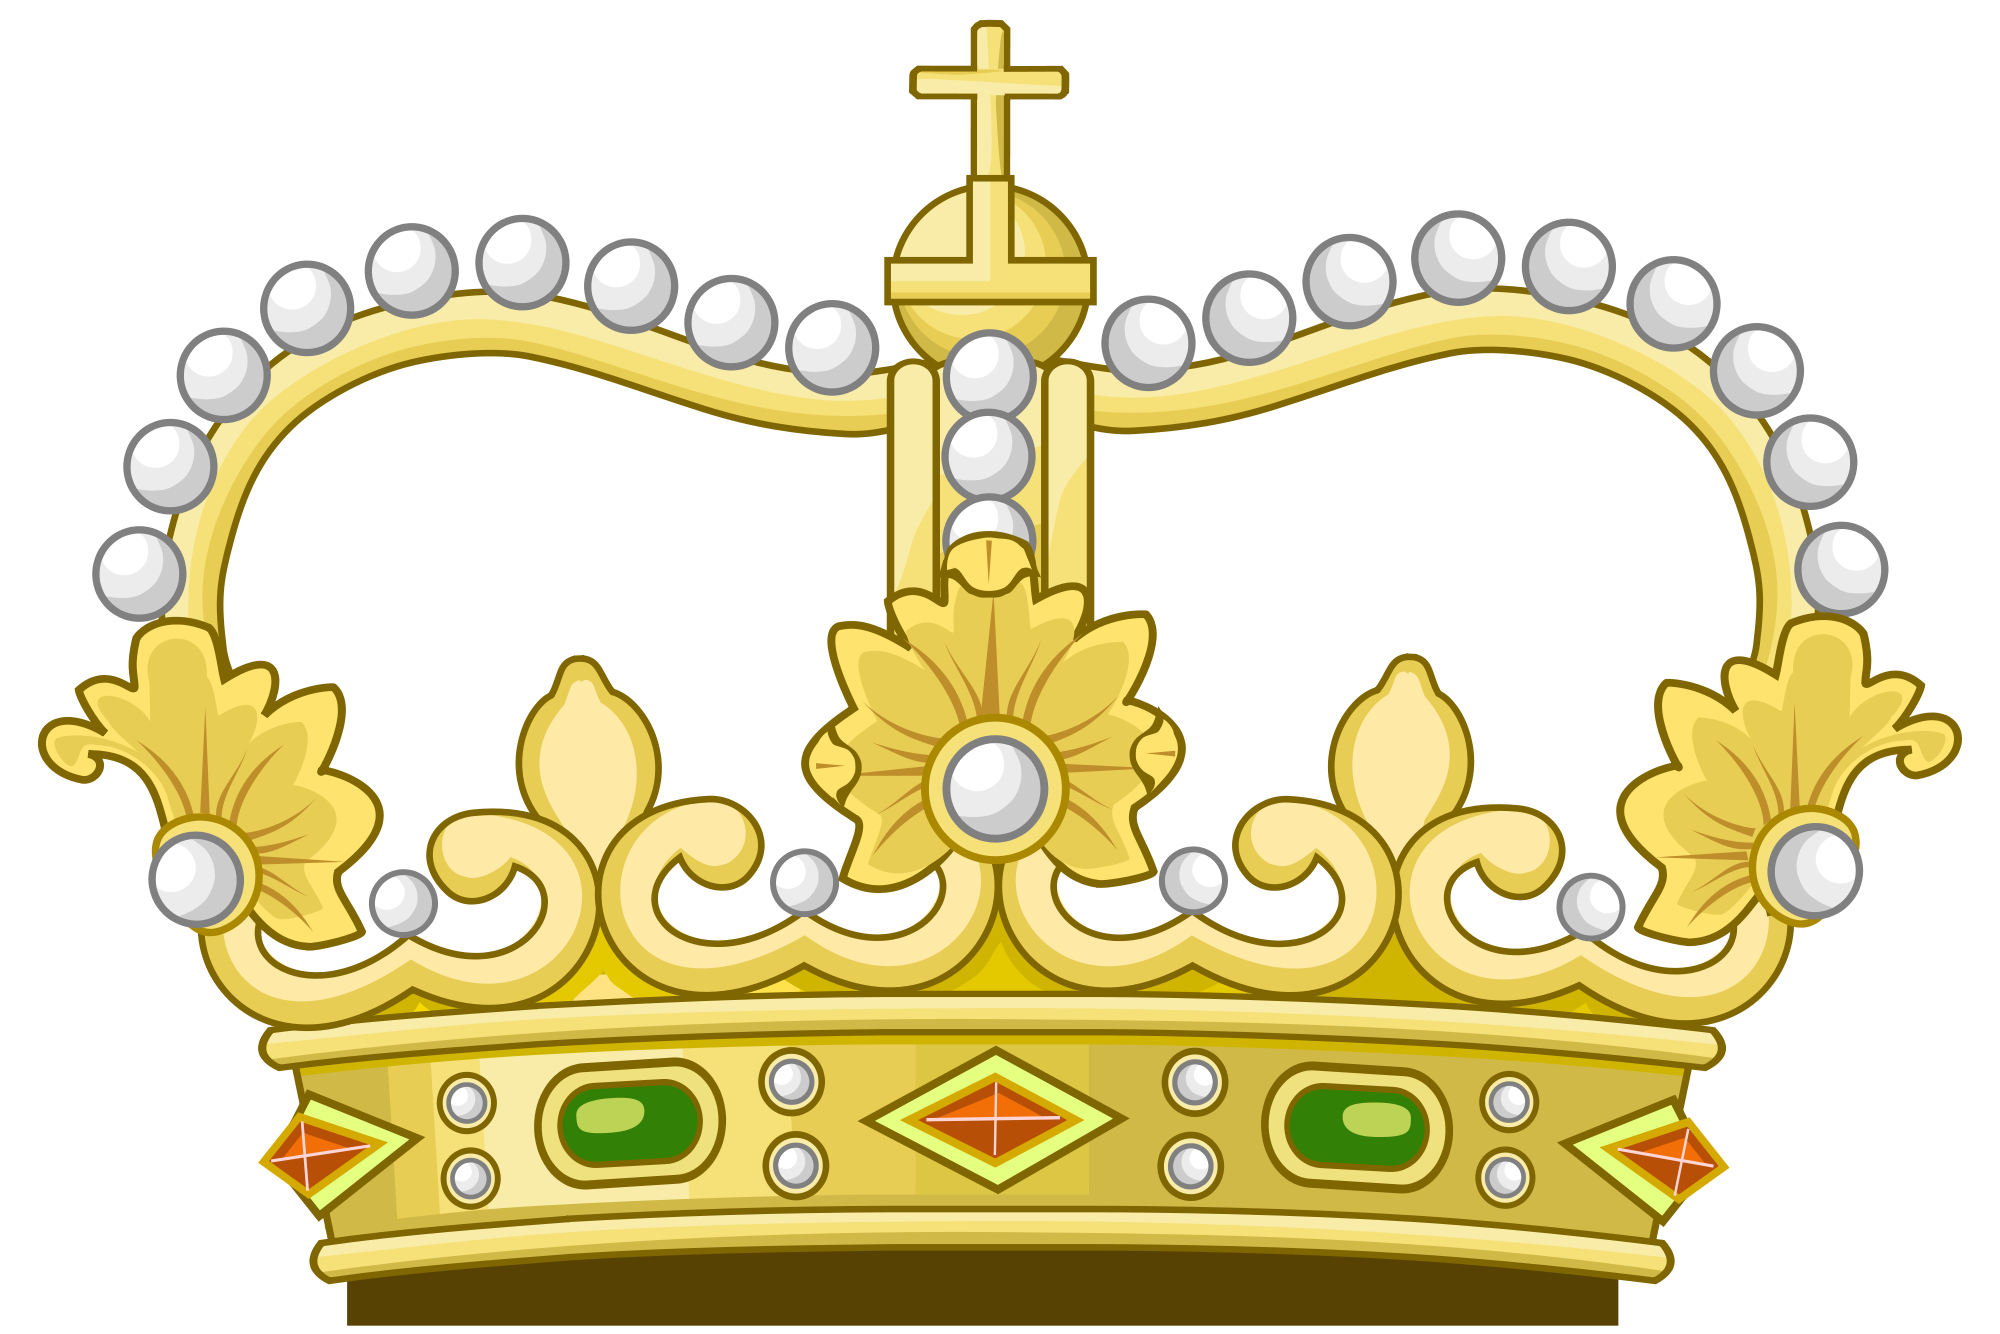 Crowns clipart royalty free. Spain crown clip art